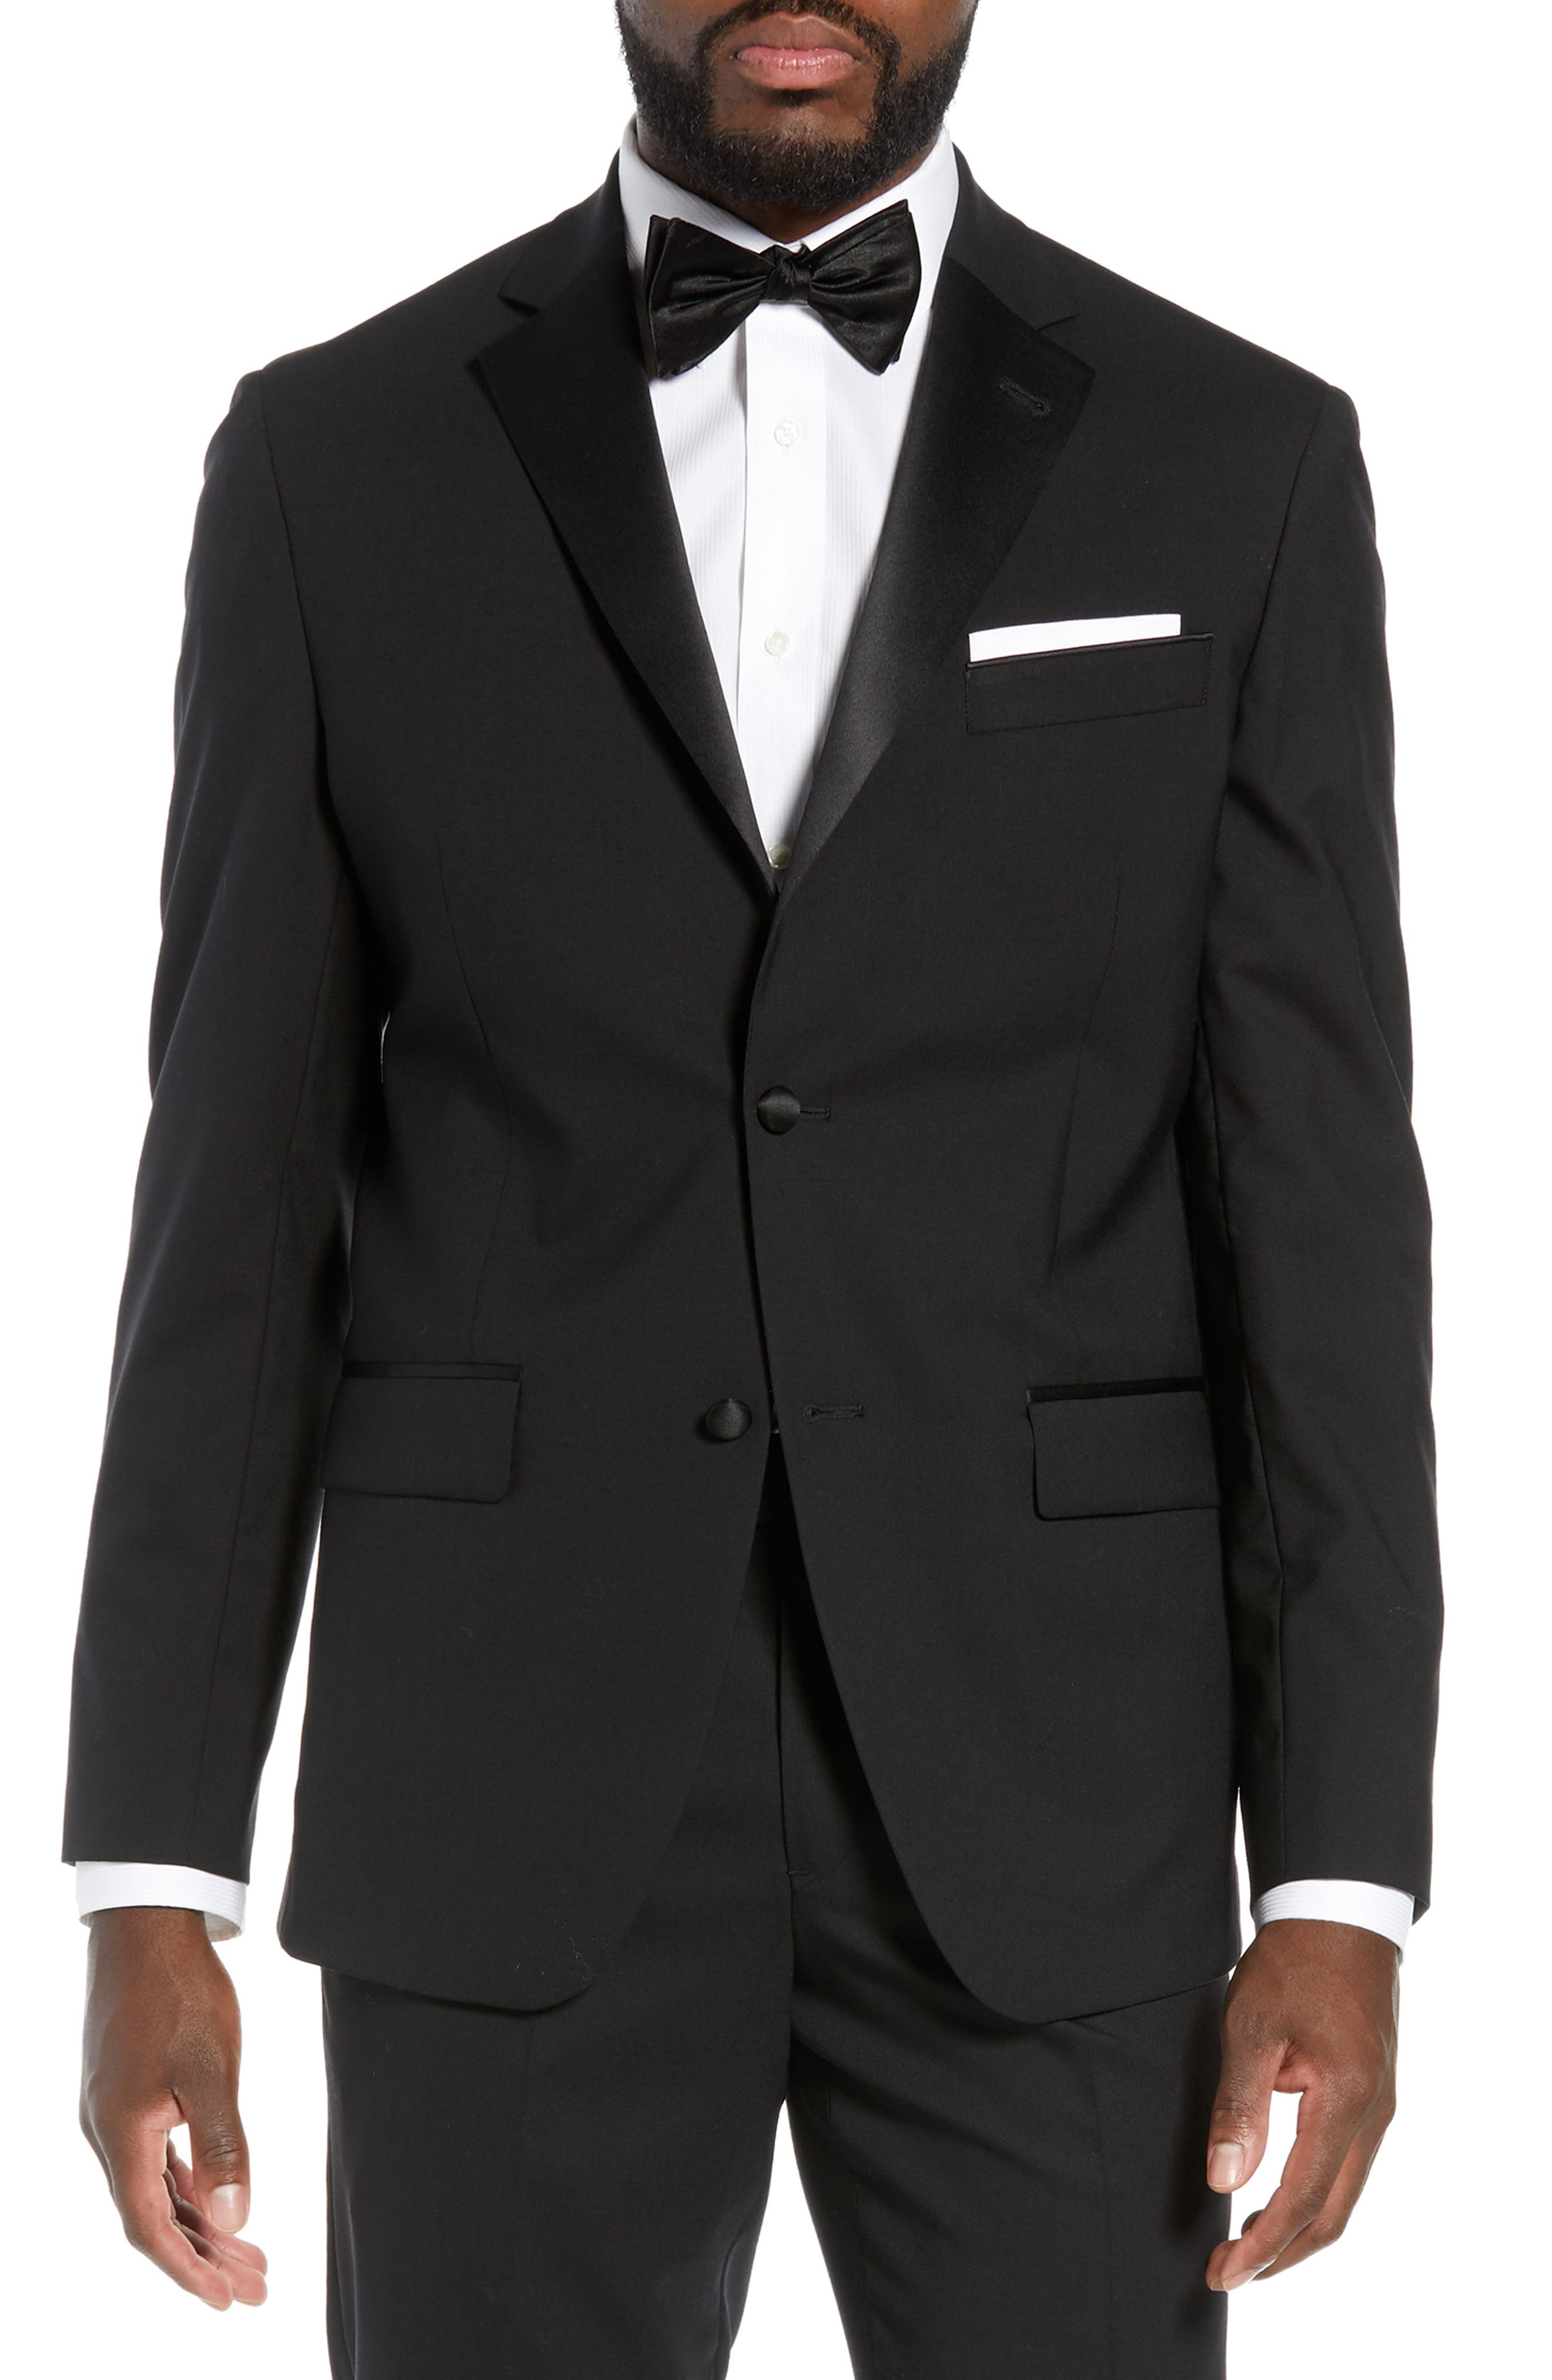 NORDSTROM MEN'S SHOP, Trim Fit Stretch Wool Tuxedo Jacket, Main thumbnail 1, color, BLACK